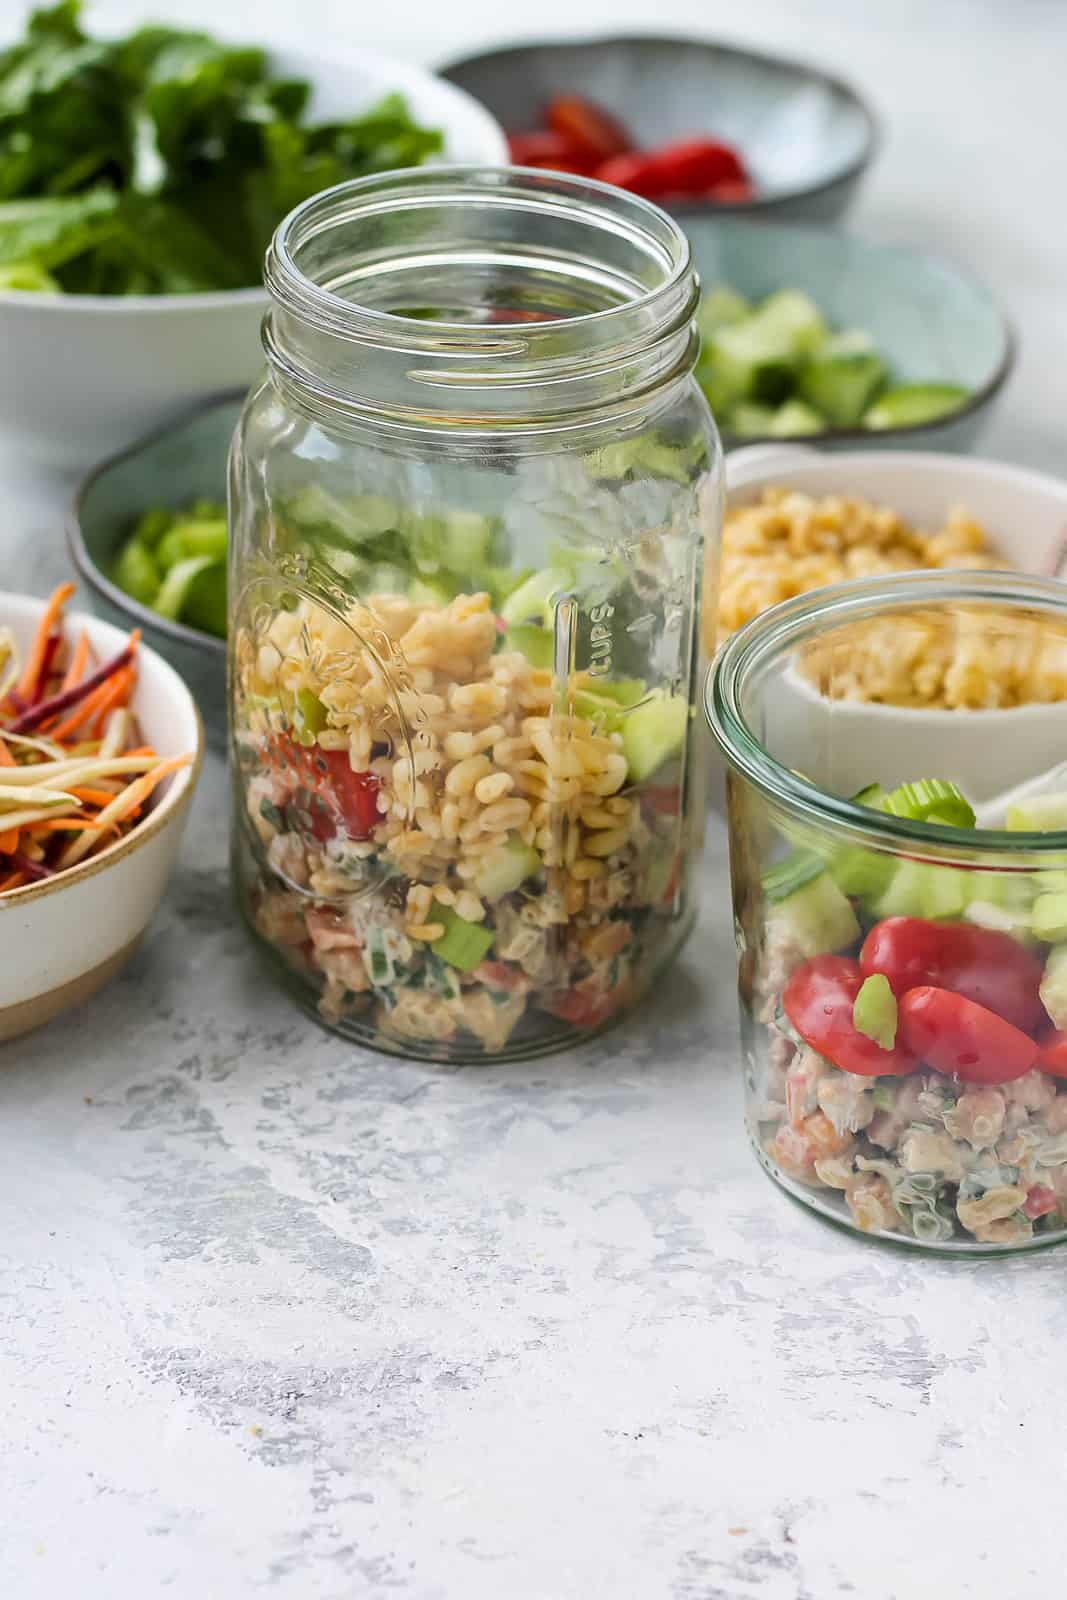 mason jars being filled with chickpea salad and vegetables on a grey background